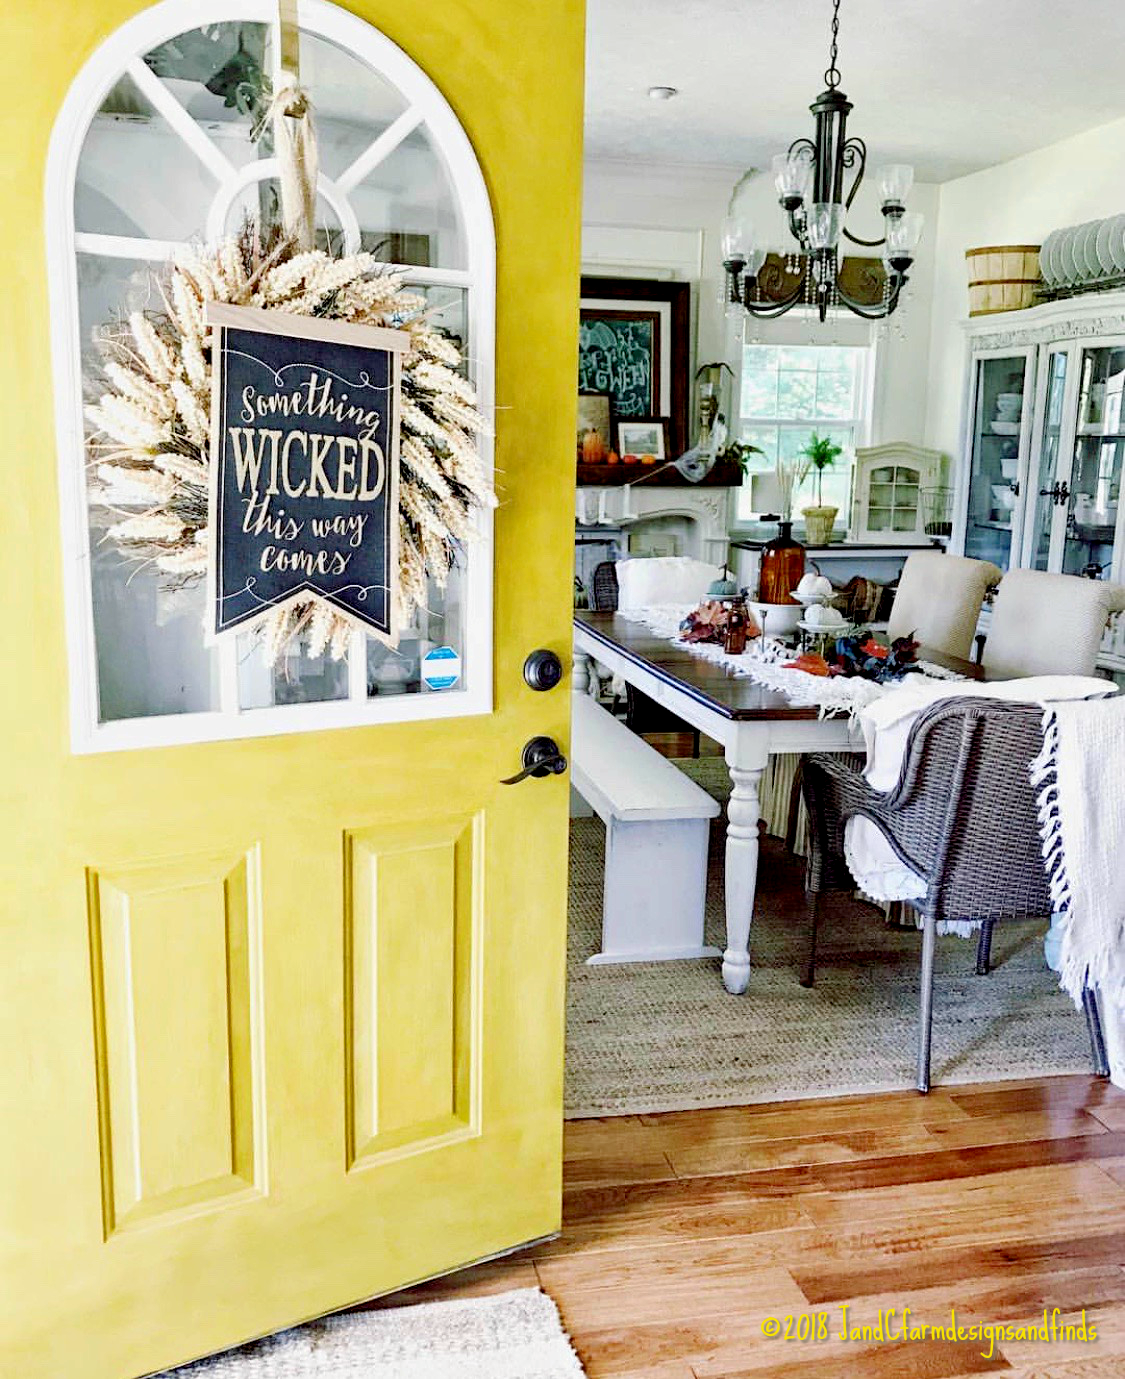 Yellow door,Welcome home, Farmhouse table, Something wicked this way comes, Instagram inspiration that stopped my scroll | www.sandykayemoss.com